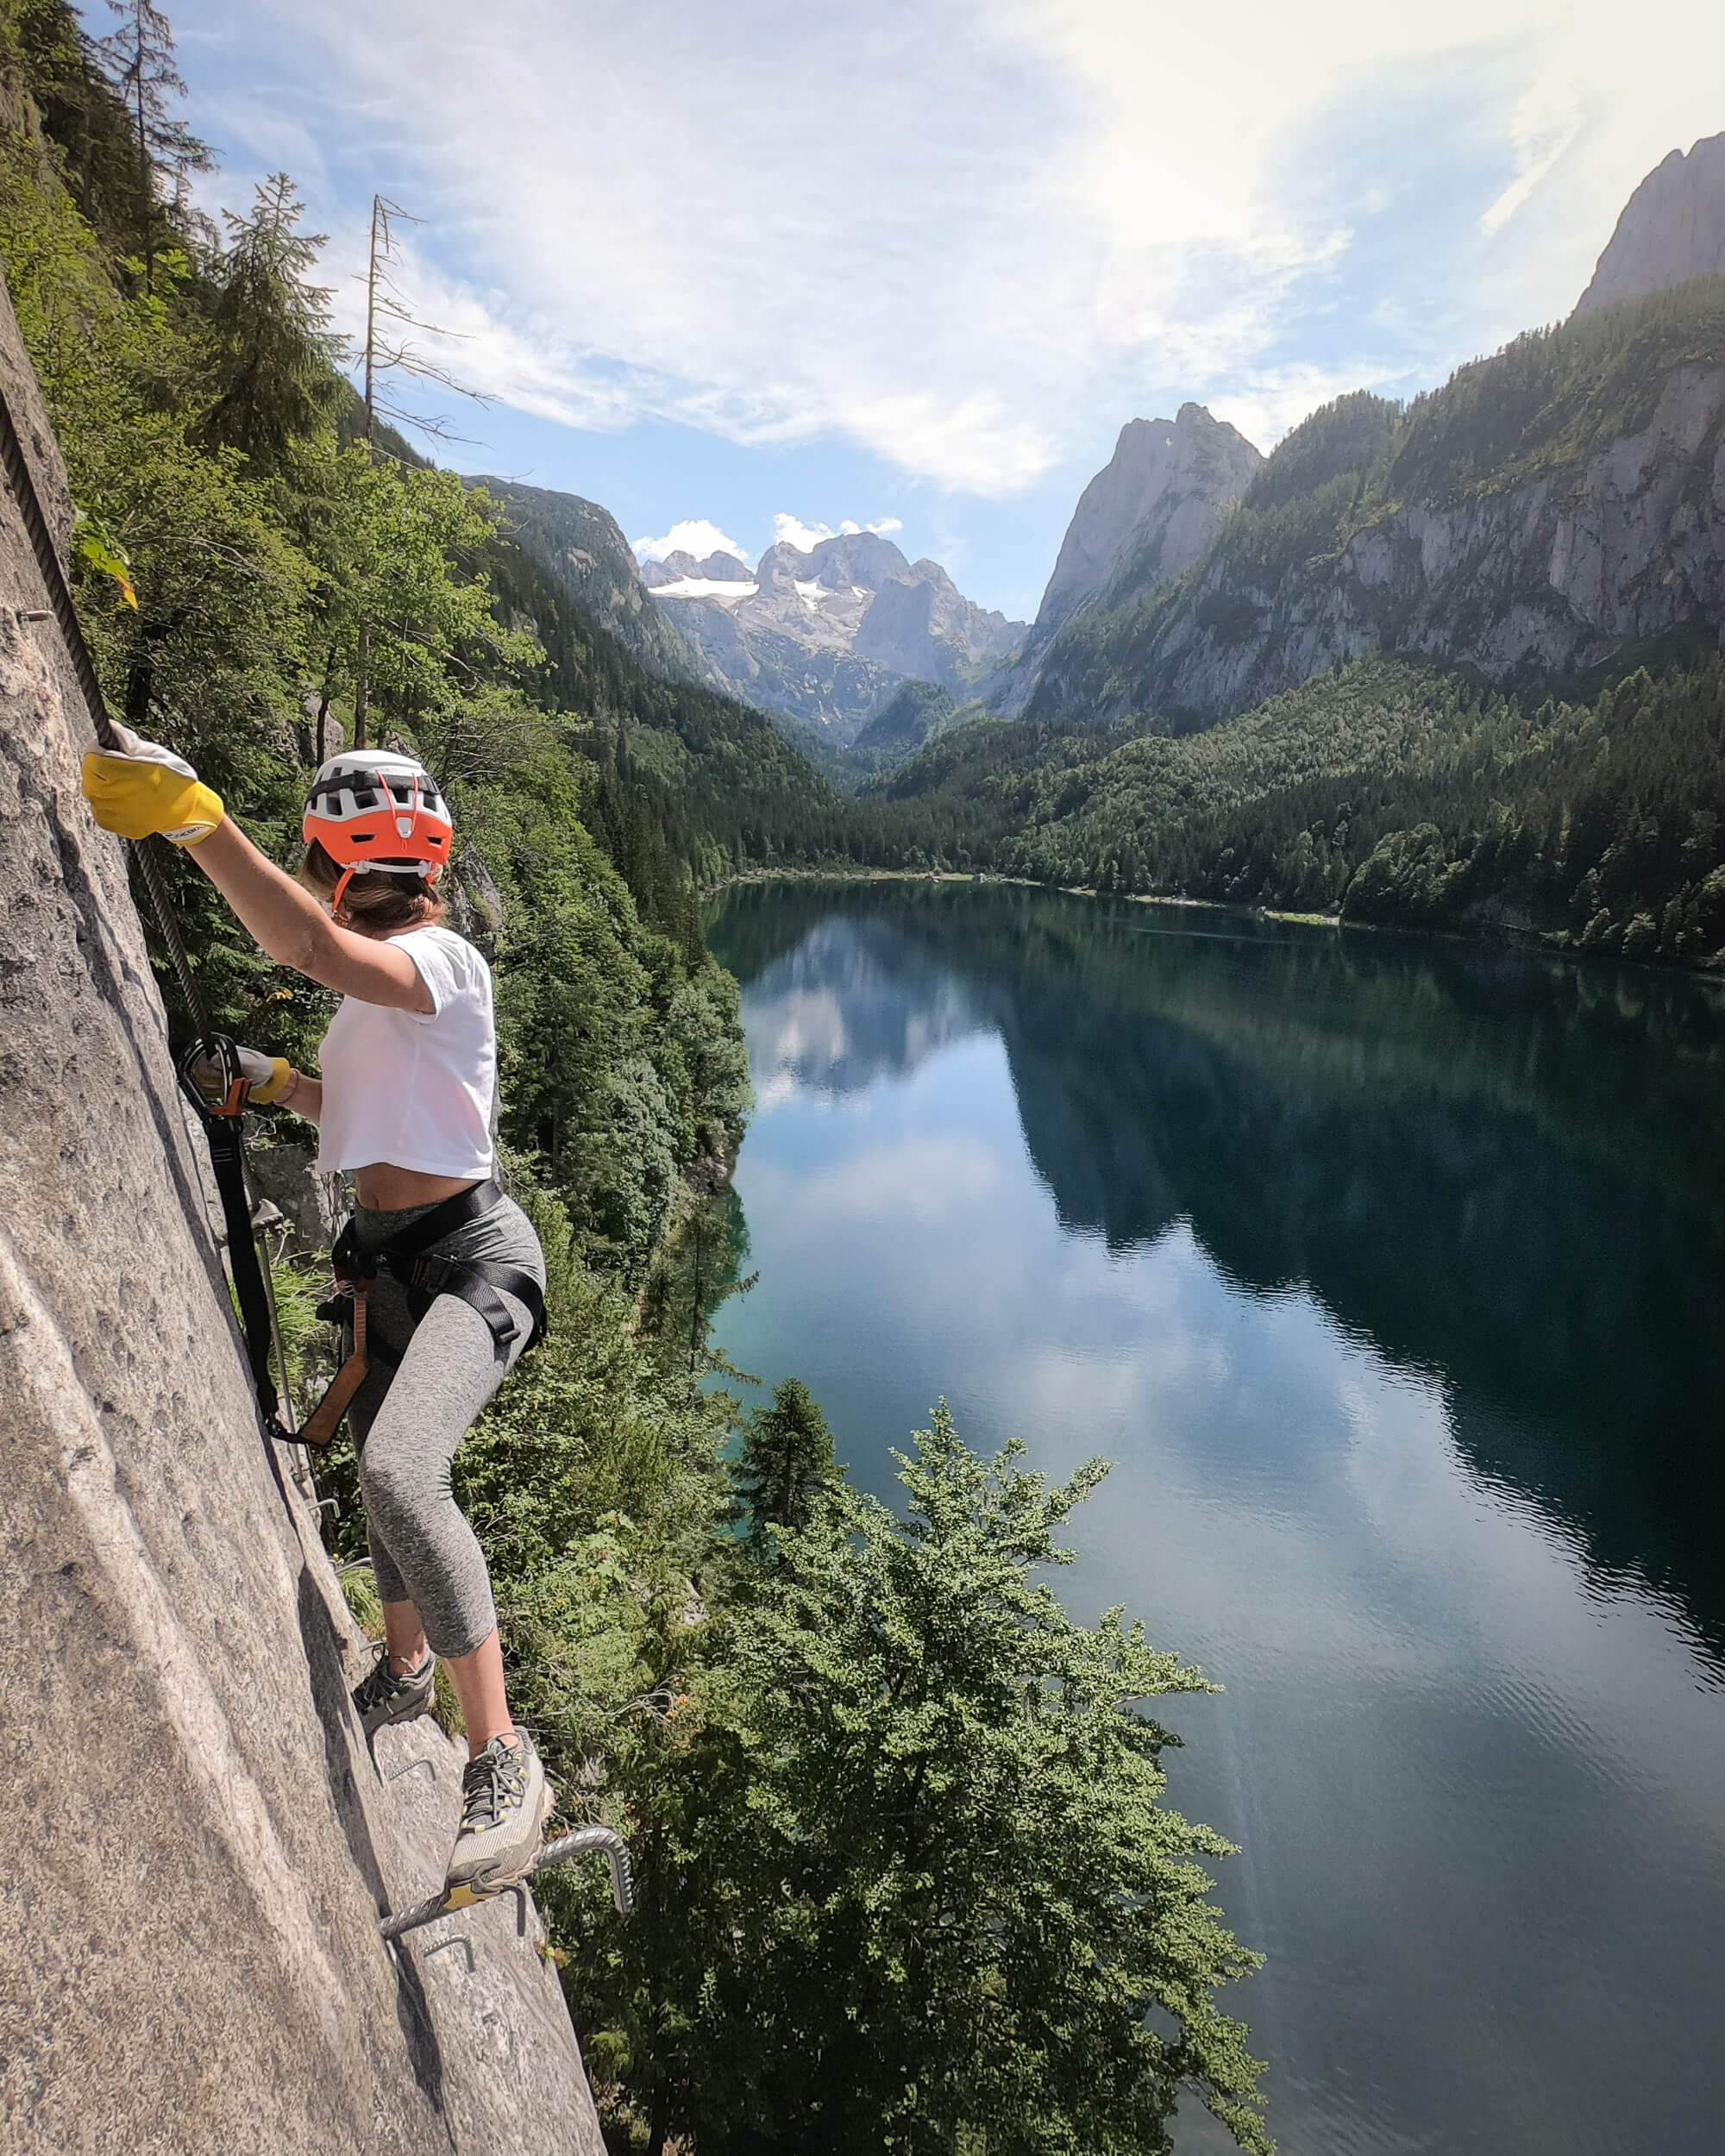 Climbing the Laserer via ferrata to practice for the Ladder to Heaven. Wearing:  leggings ,  trail running shoes ,  helmet .